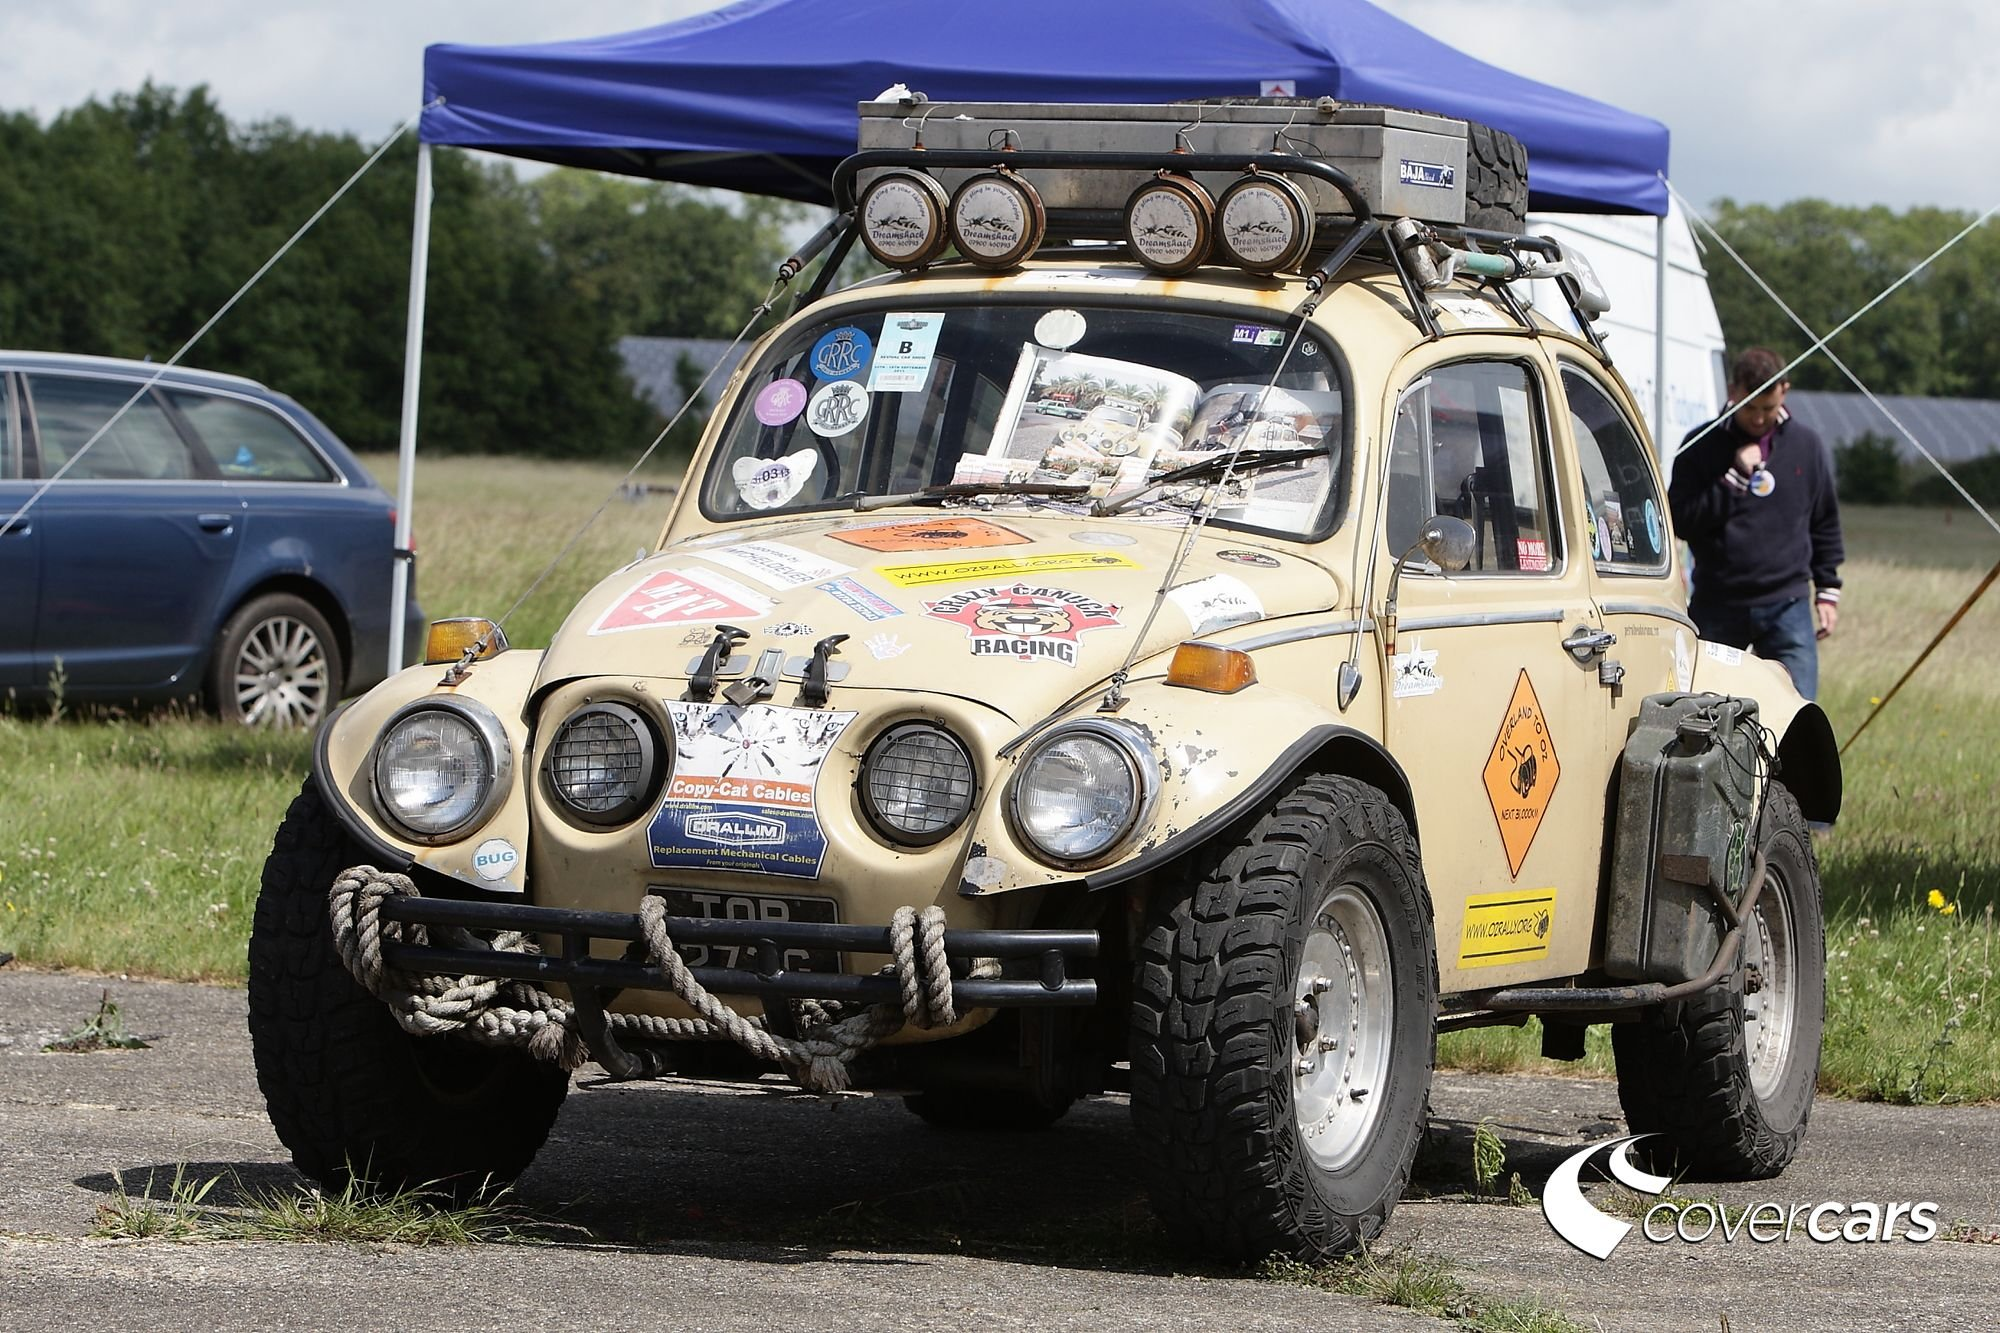 Baja Bug Volkswagon Offroad Race Racing Beetle Custom Dunebuggy Dune Wallpaper 2000x1333 743817 Wallpaperup